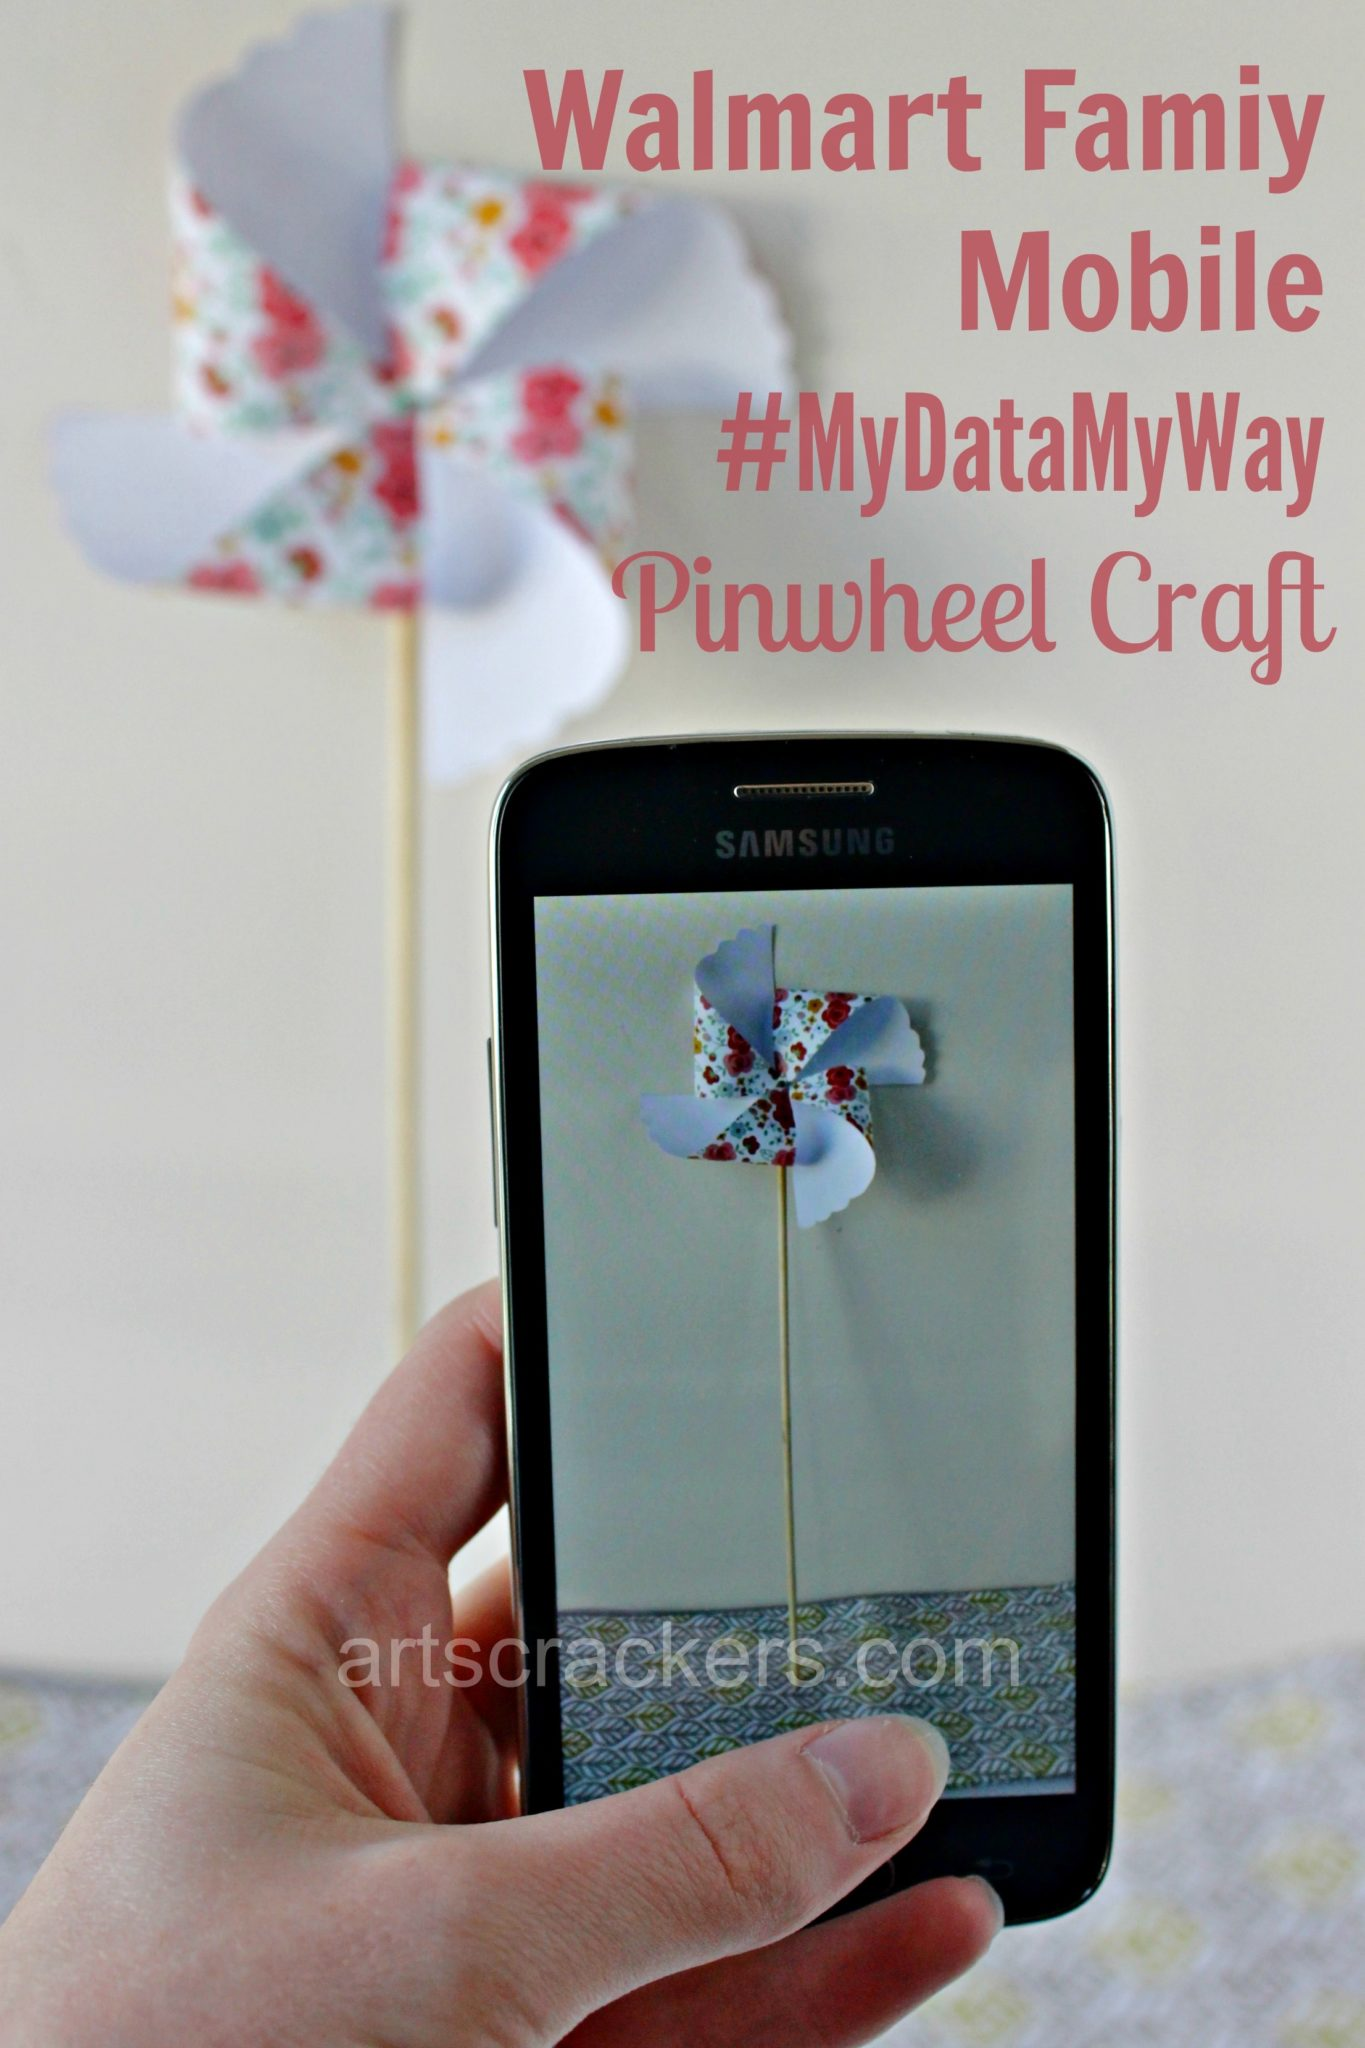 Walmart Family Mobile Pinwheel Craft. Click the picture to read the post.